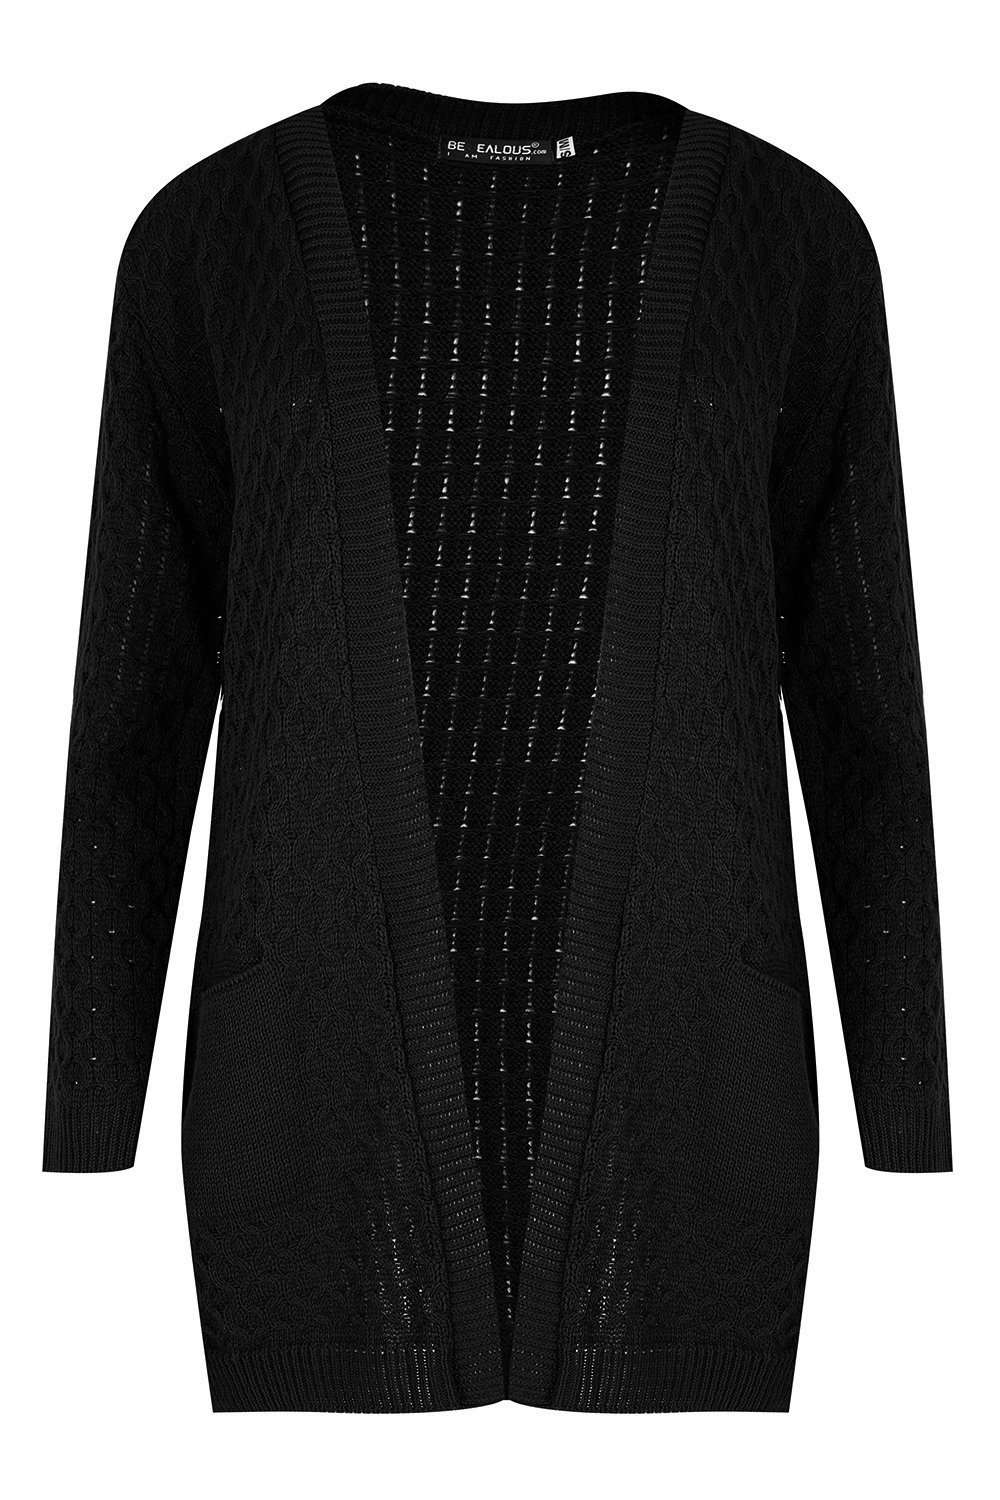 Mary Long Sleeve Knitted Cardigan With Pockets - bejealous-com